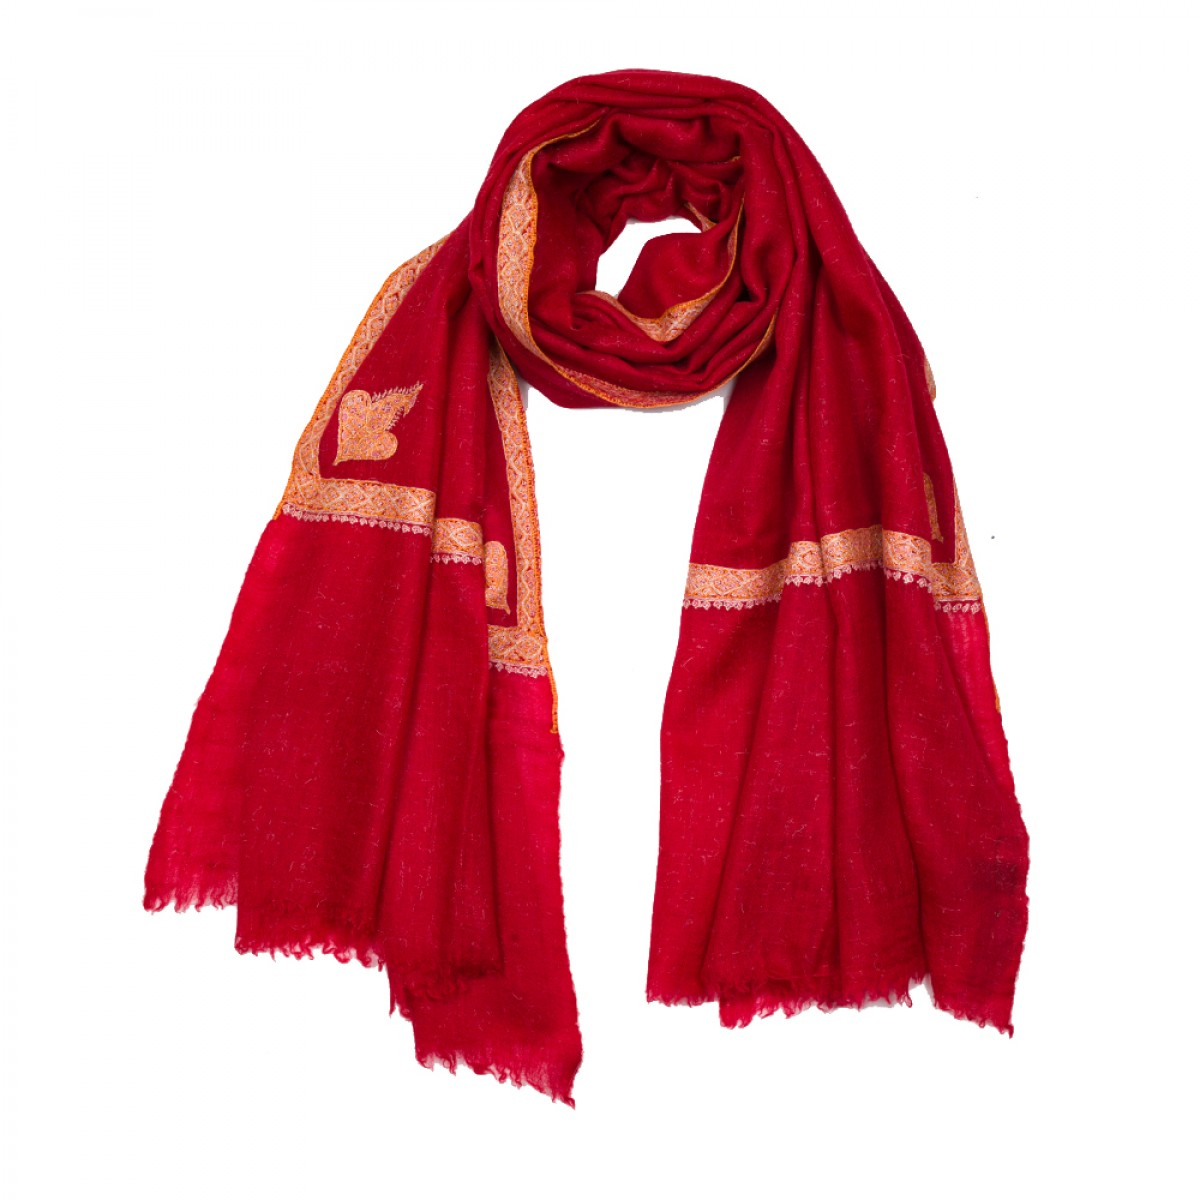 Hand Embroidered Cashmere Pashmina Stole - Torri Red